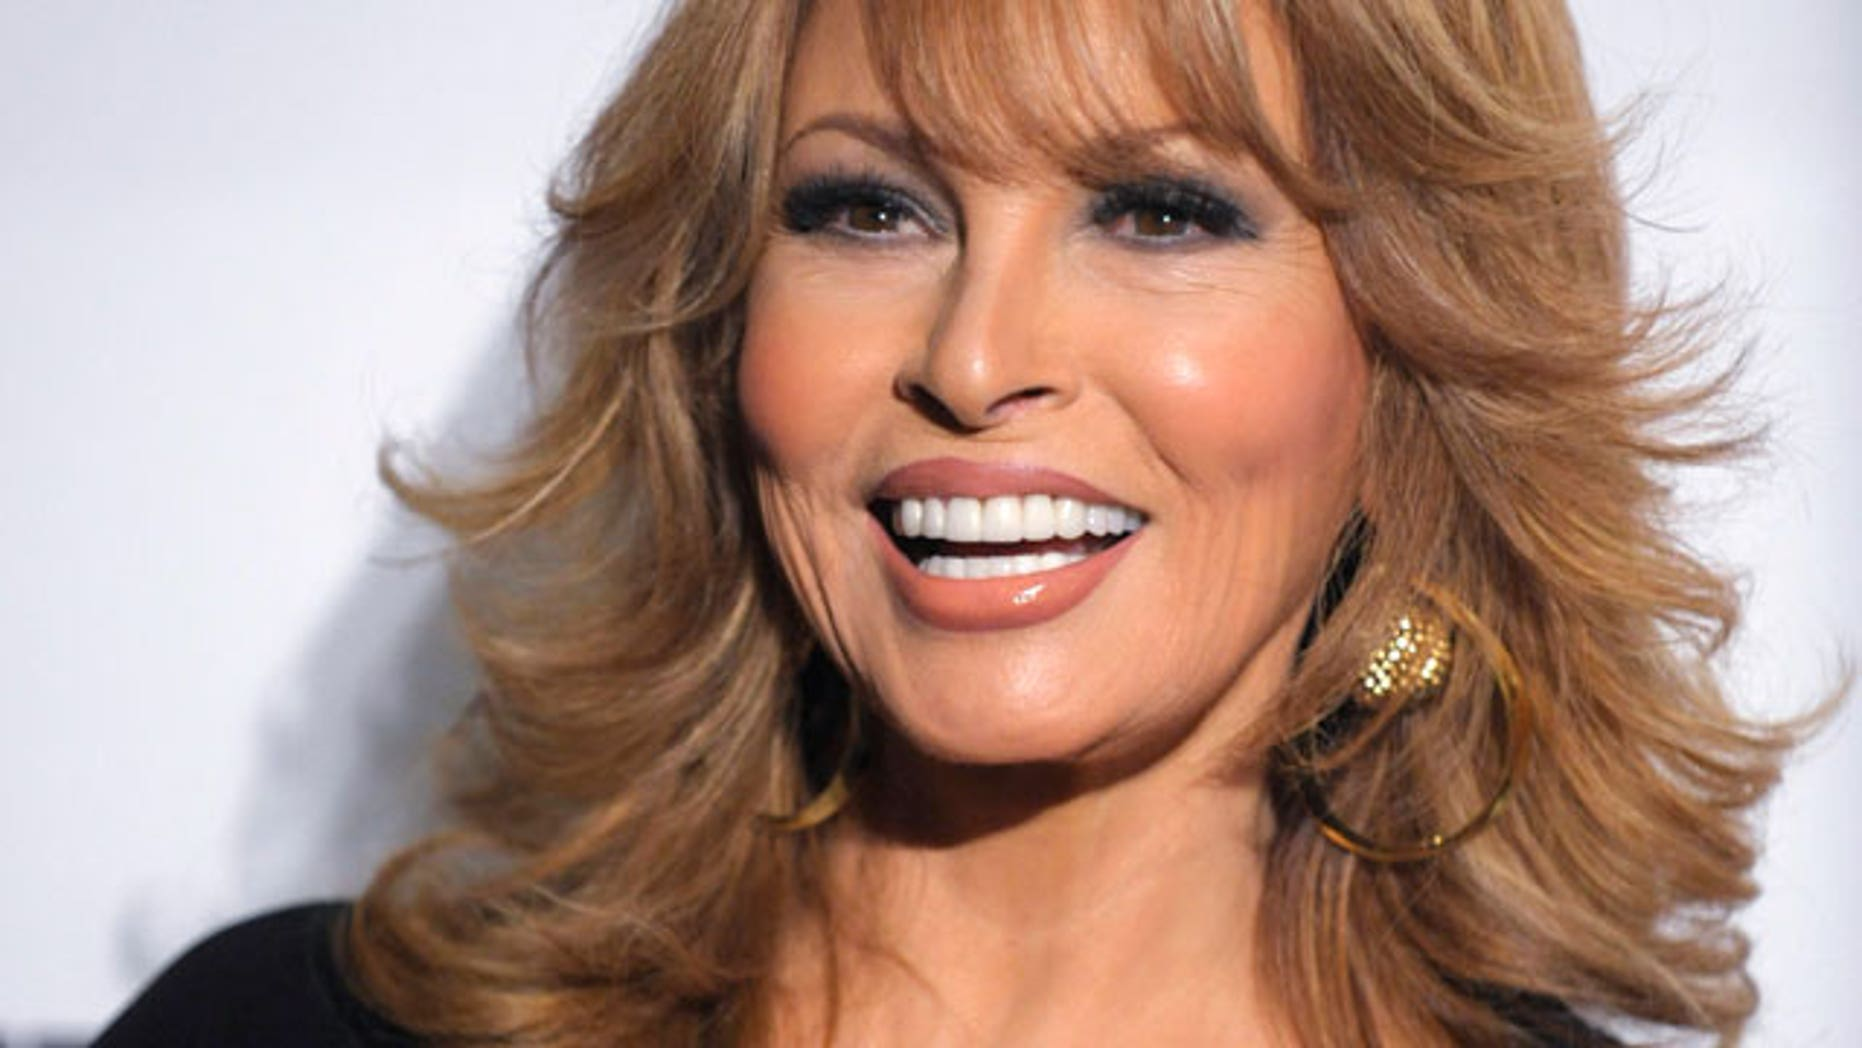 Instagram Raquel Welch nudes (93 foto and video), Tits, Paparazzi, Boobs, panties 2017